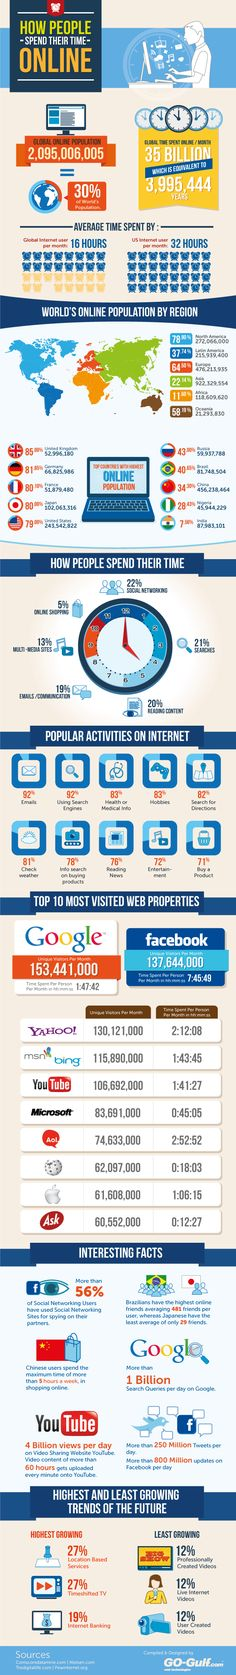 How Do People Spend Their Time Online? [INFOGRAPHIC]